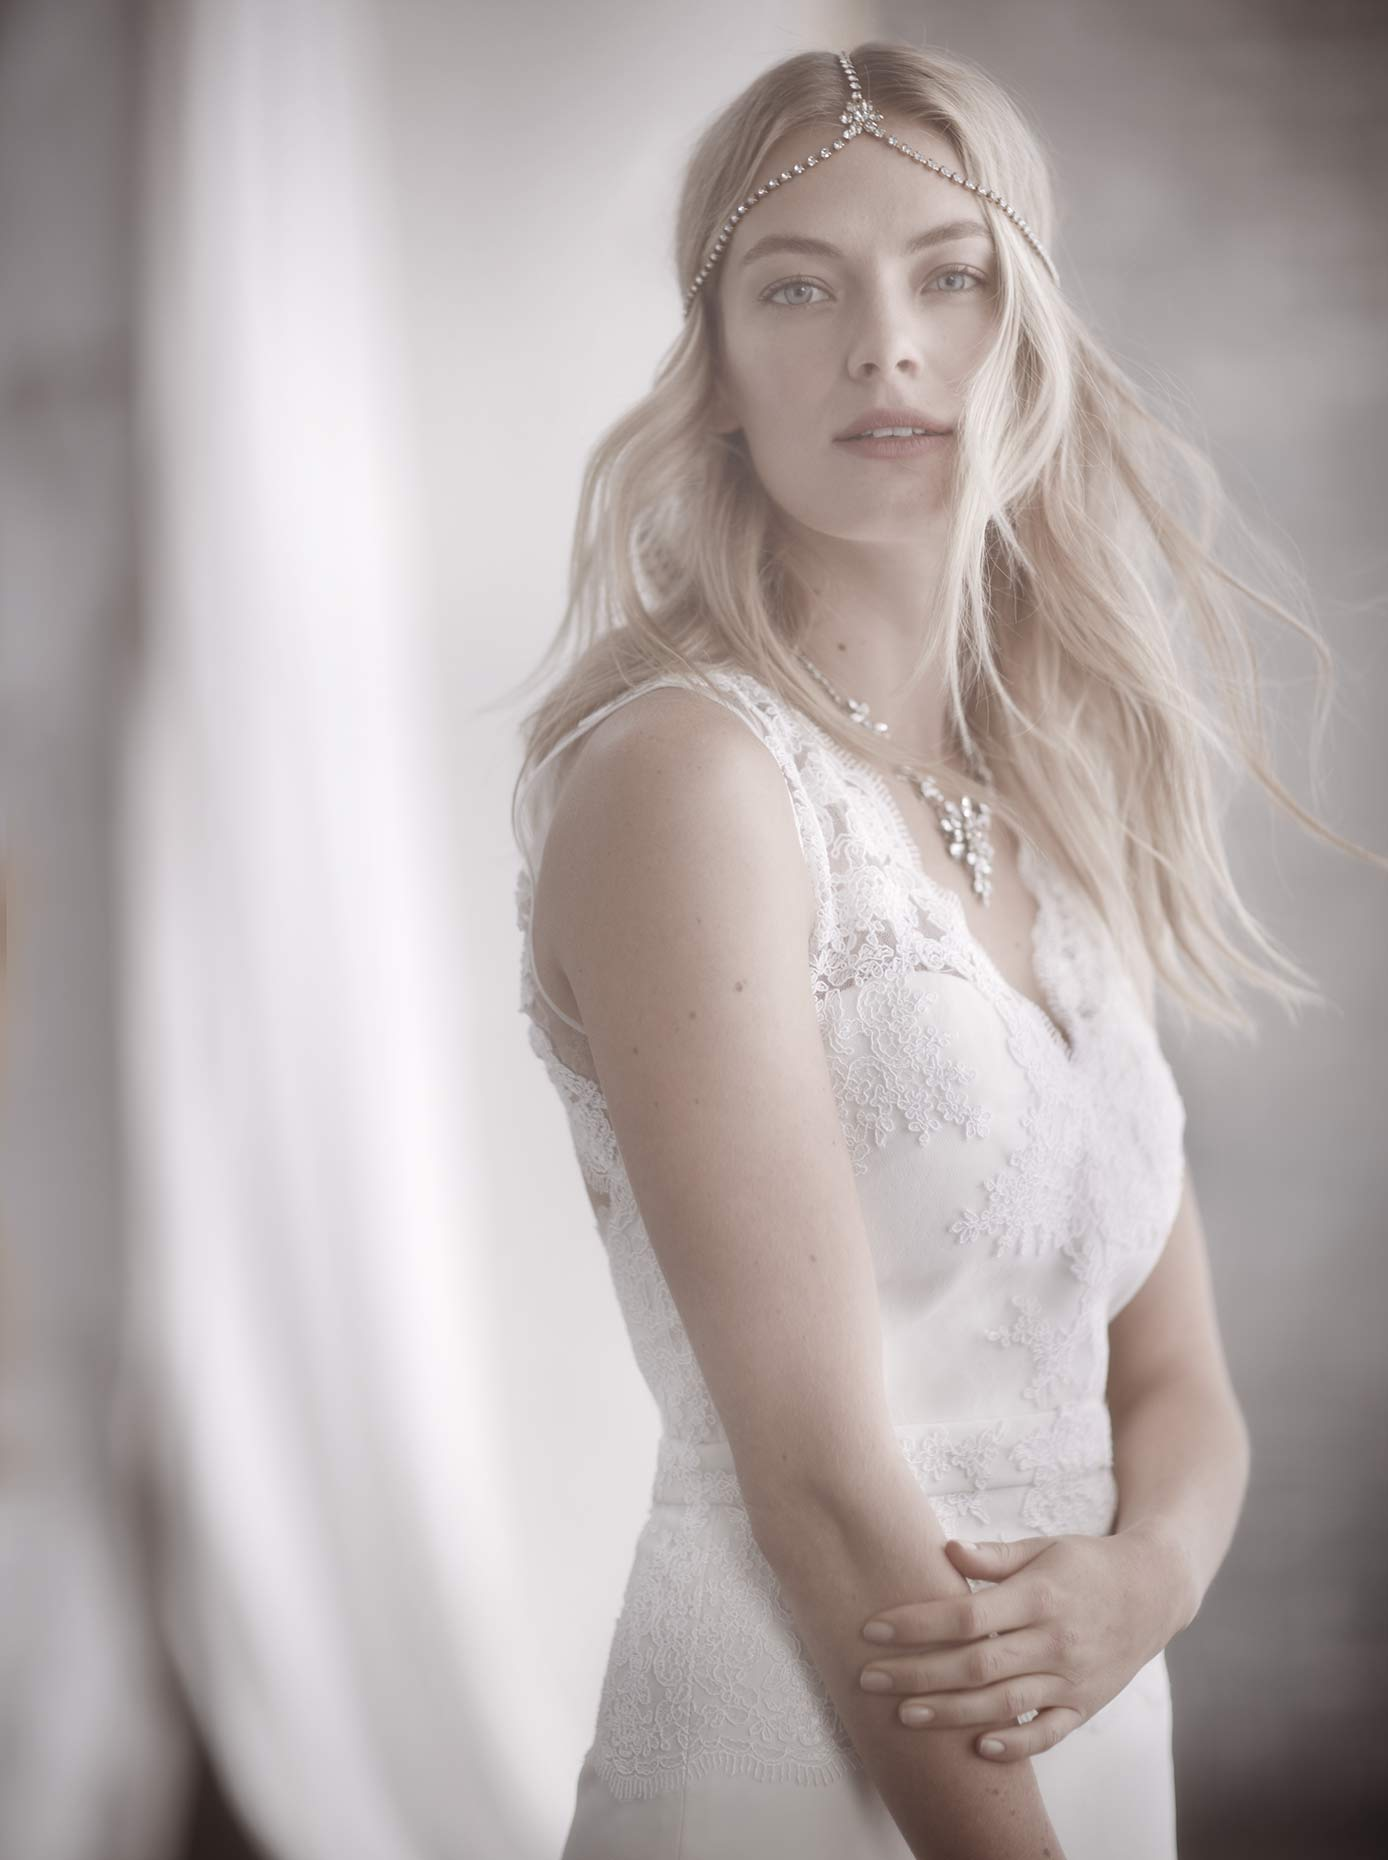 Bridal beauty photograph for BHLDN featuring a model in a white dress